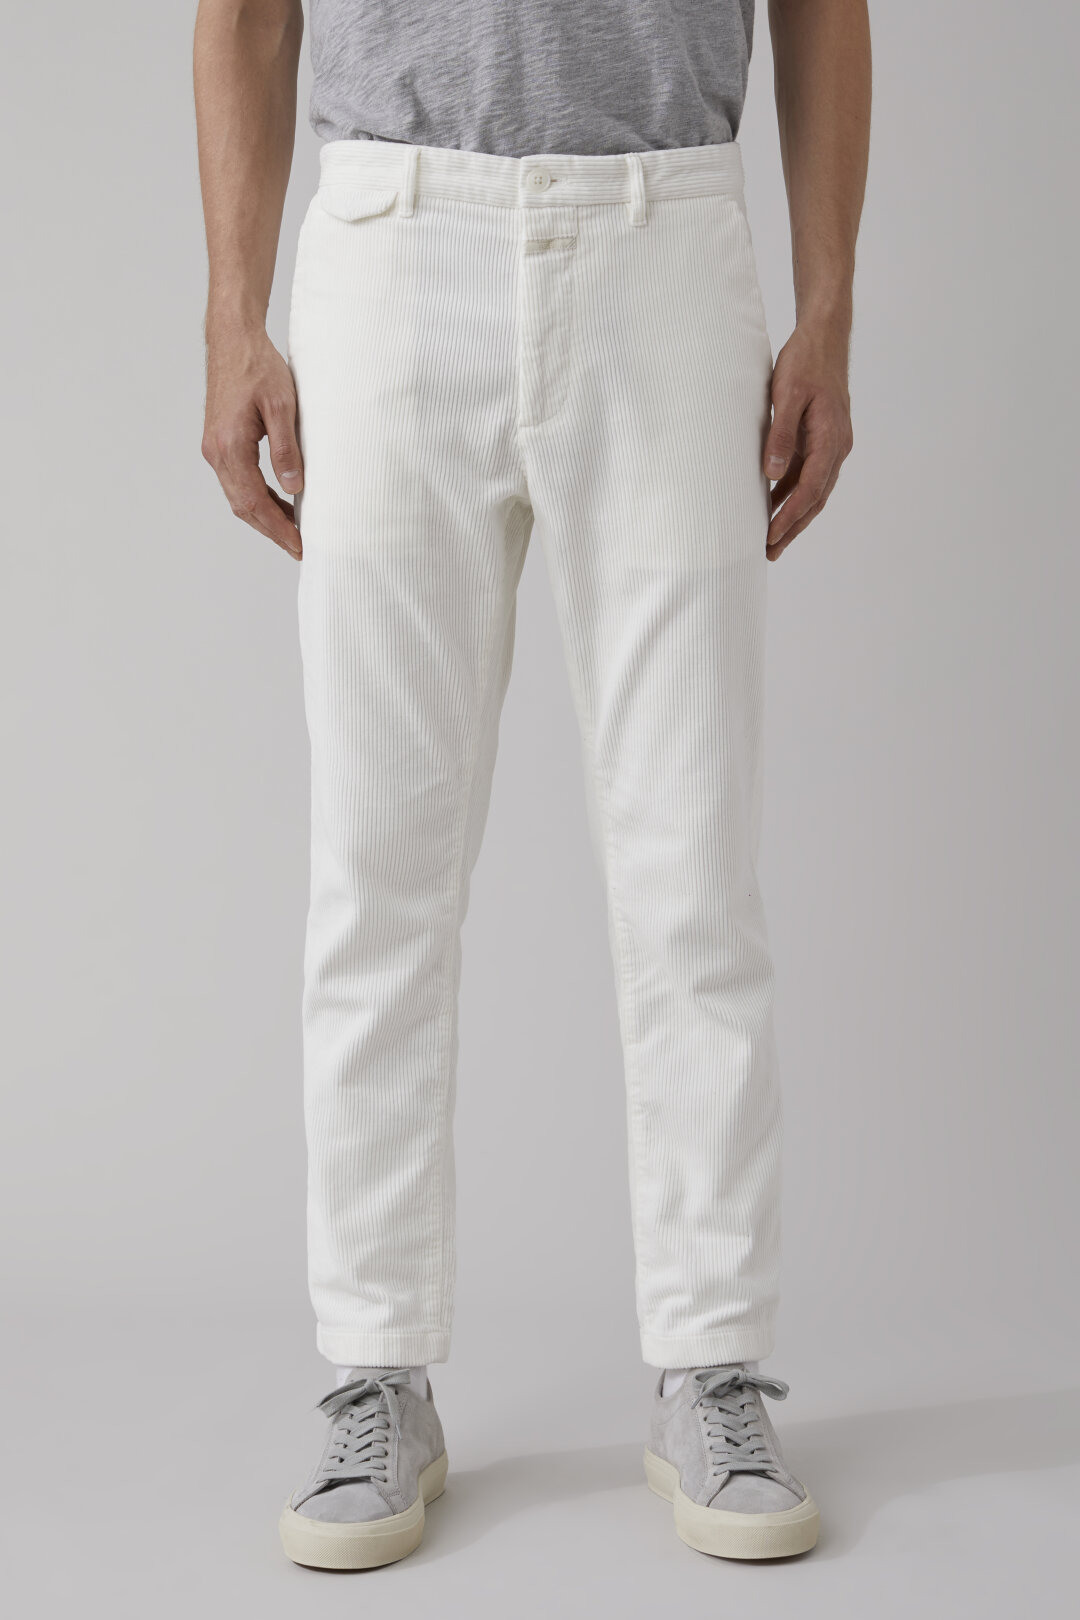 Atelier Cropped Pants